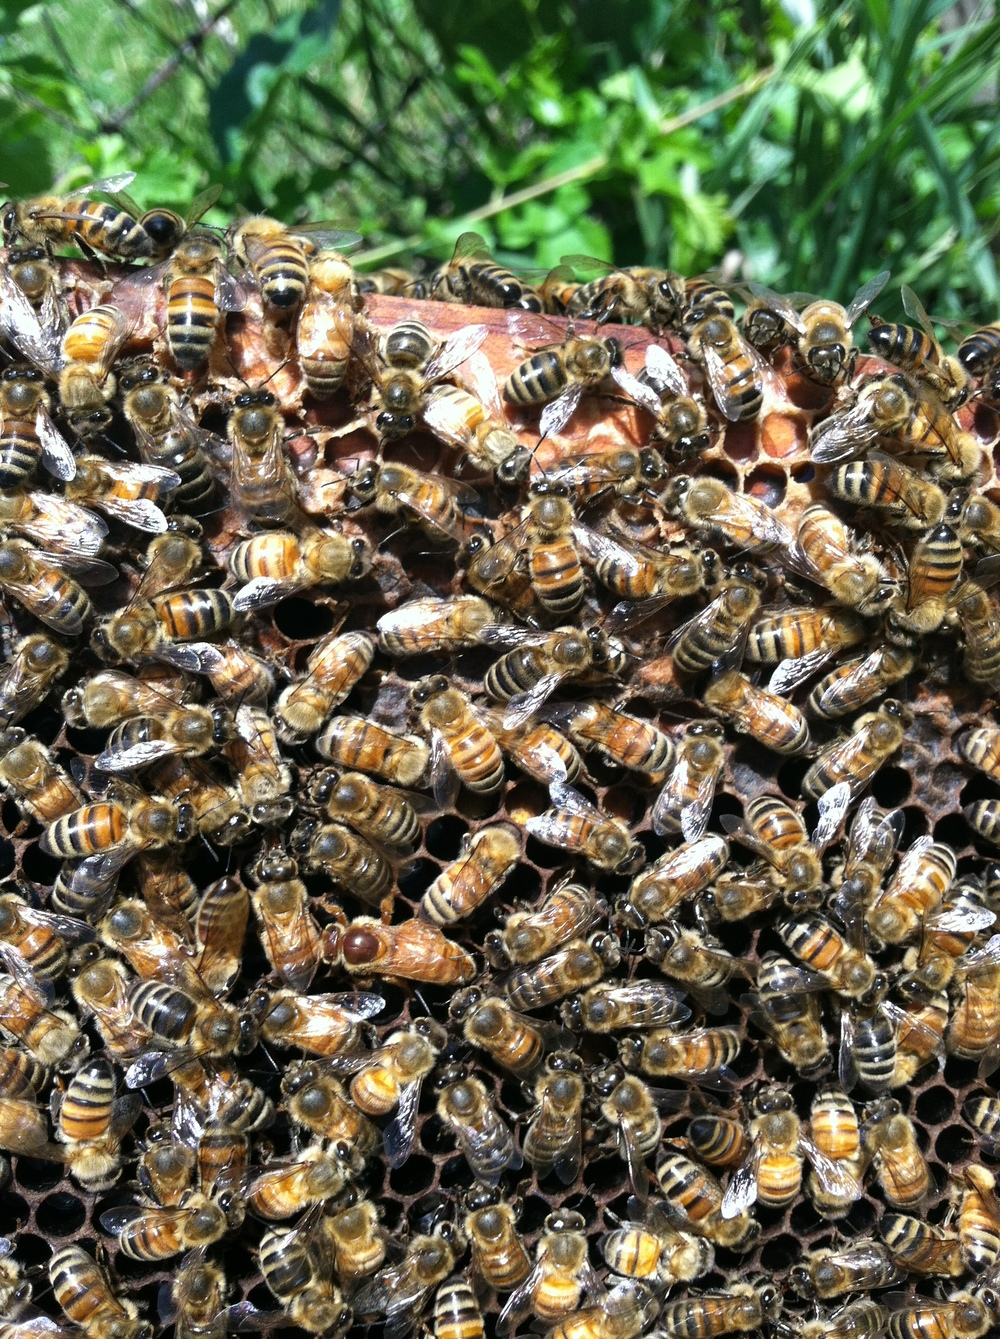 Find the queen, if you can!